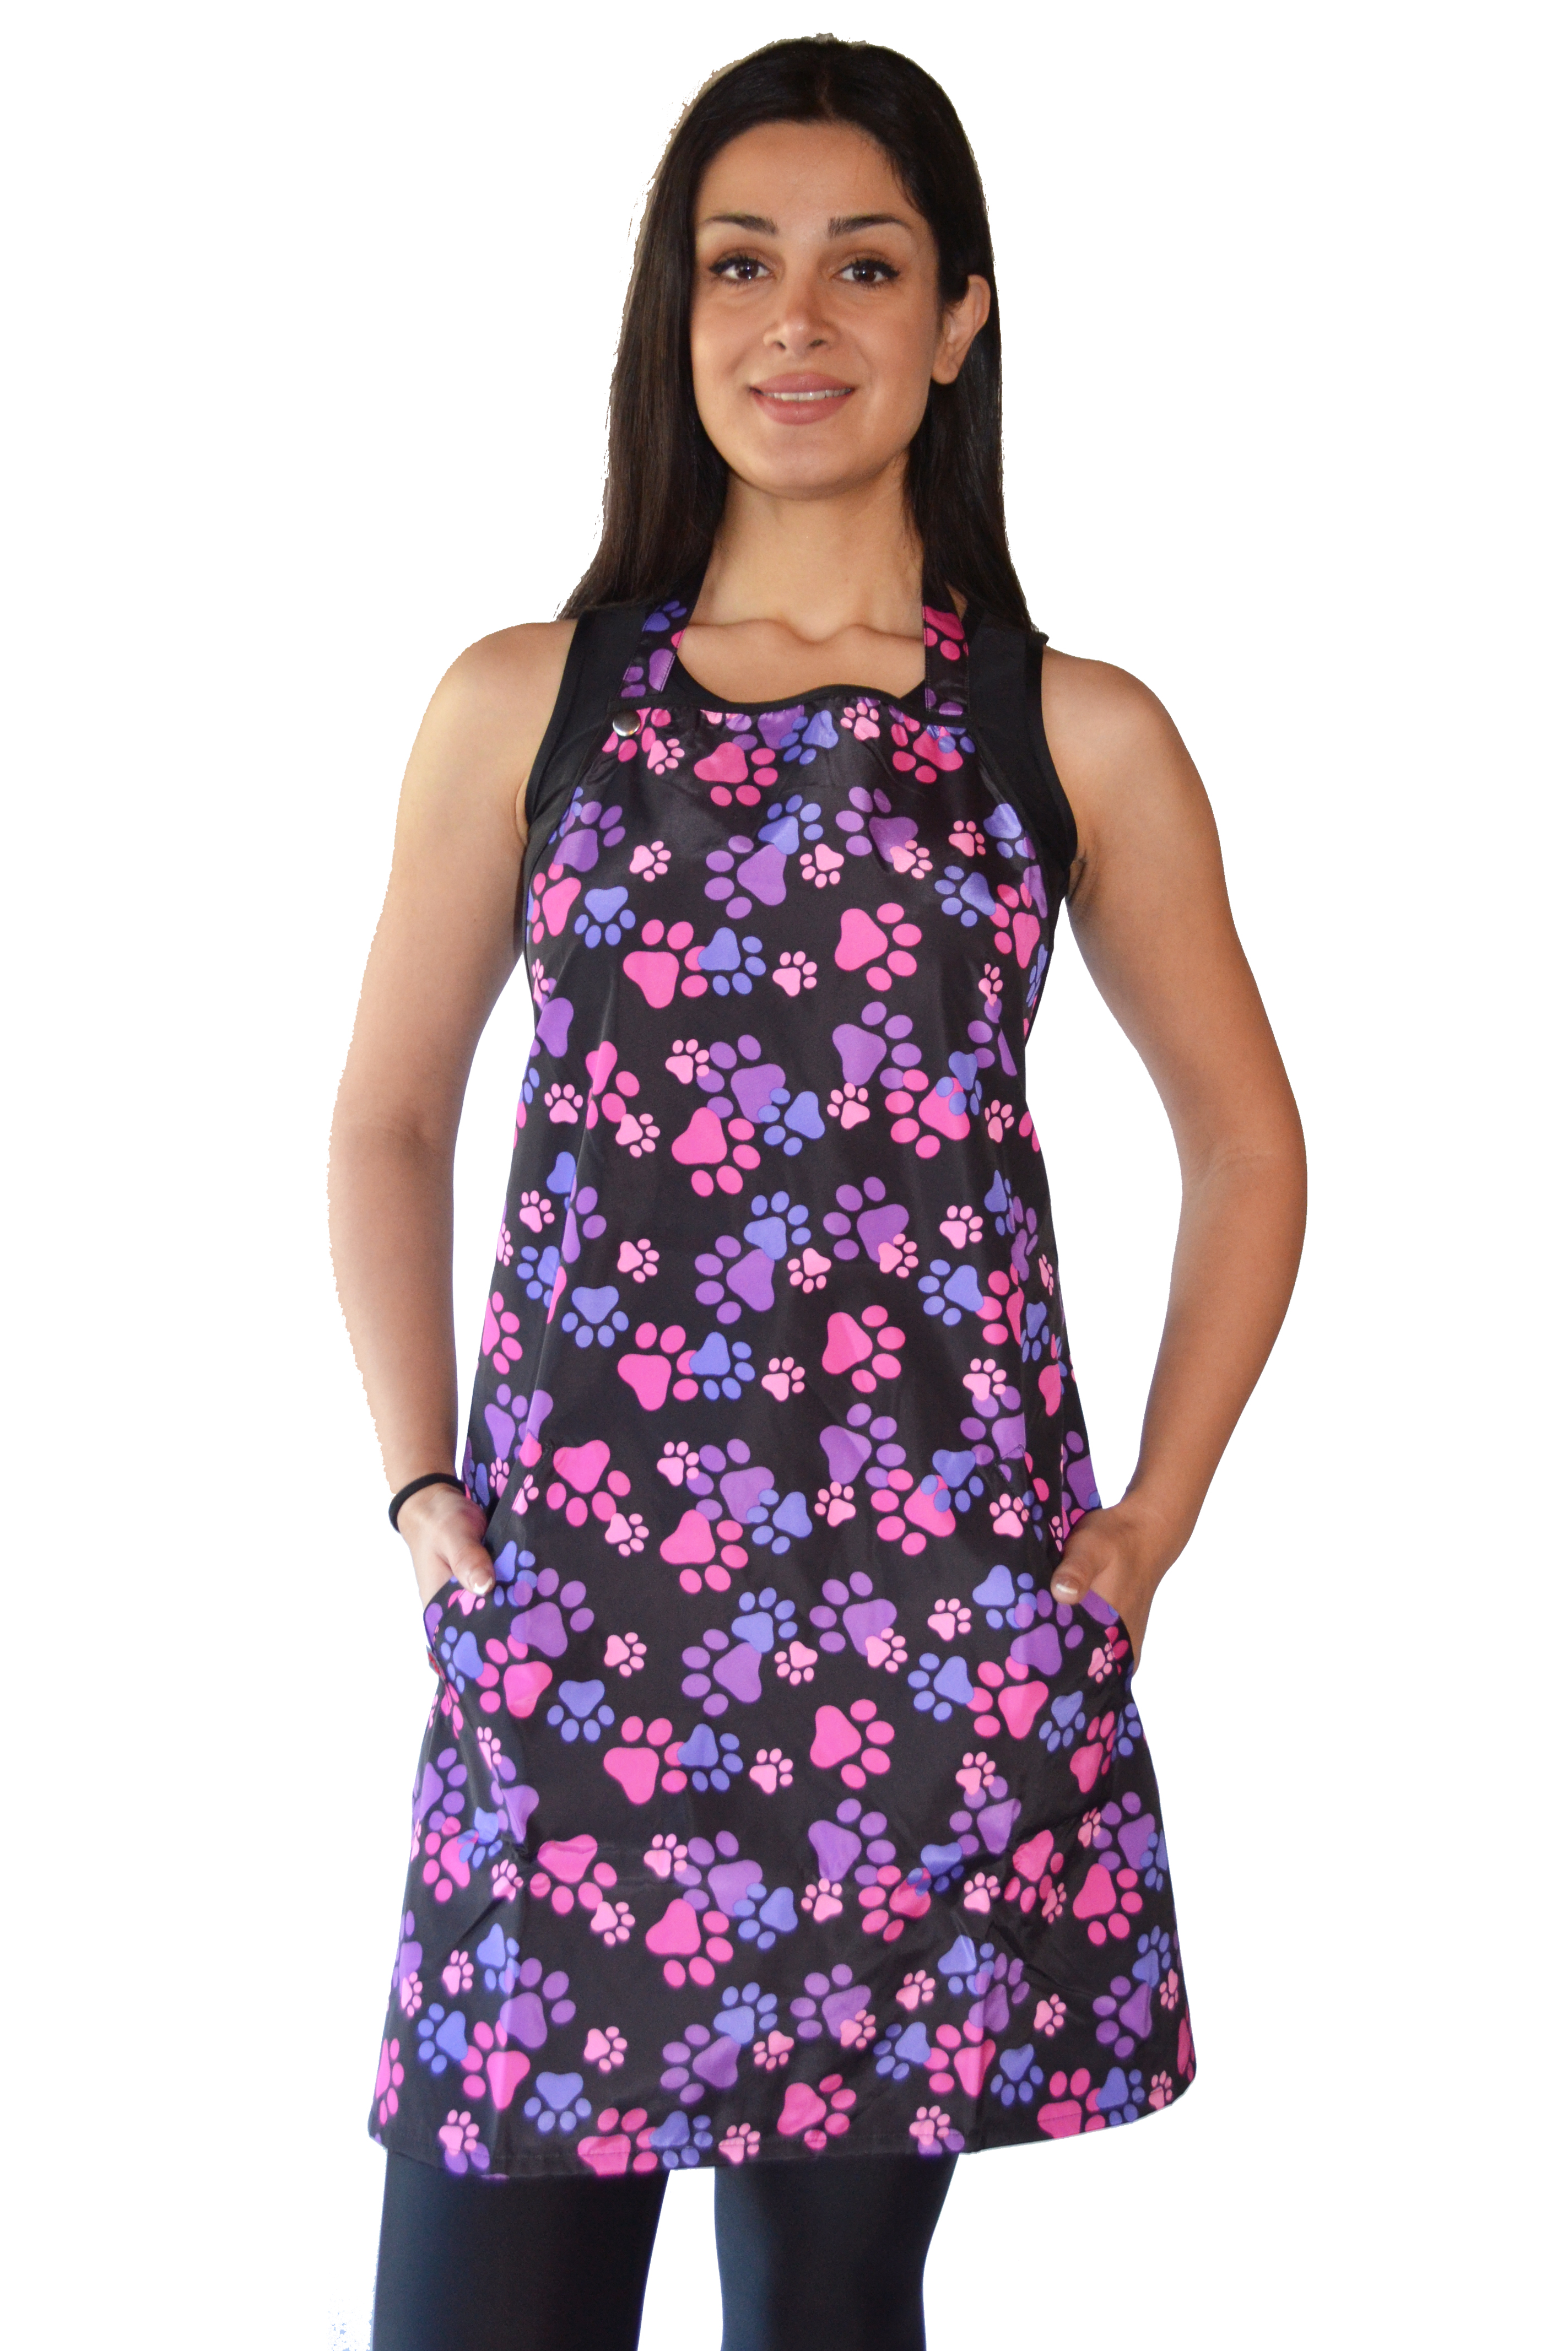 Pink and Purple Paw Print Waterproof Apron